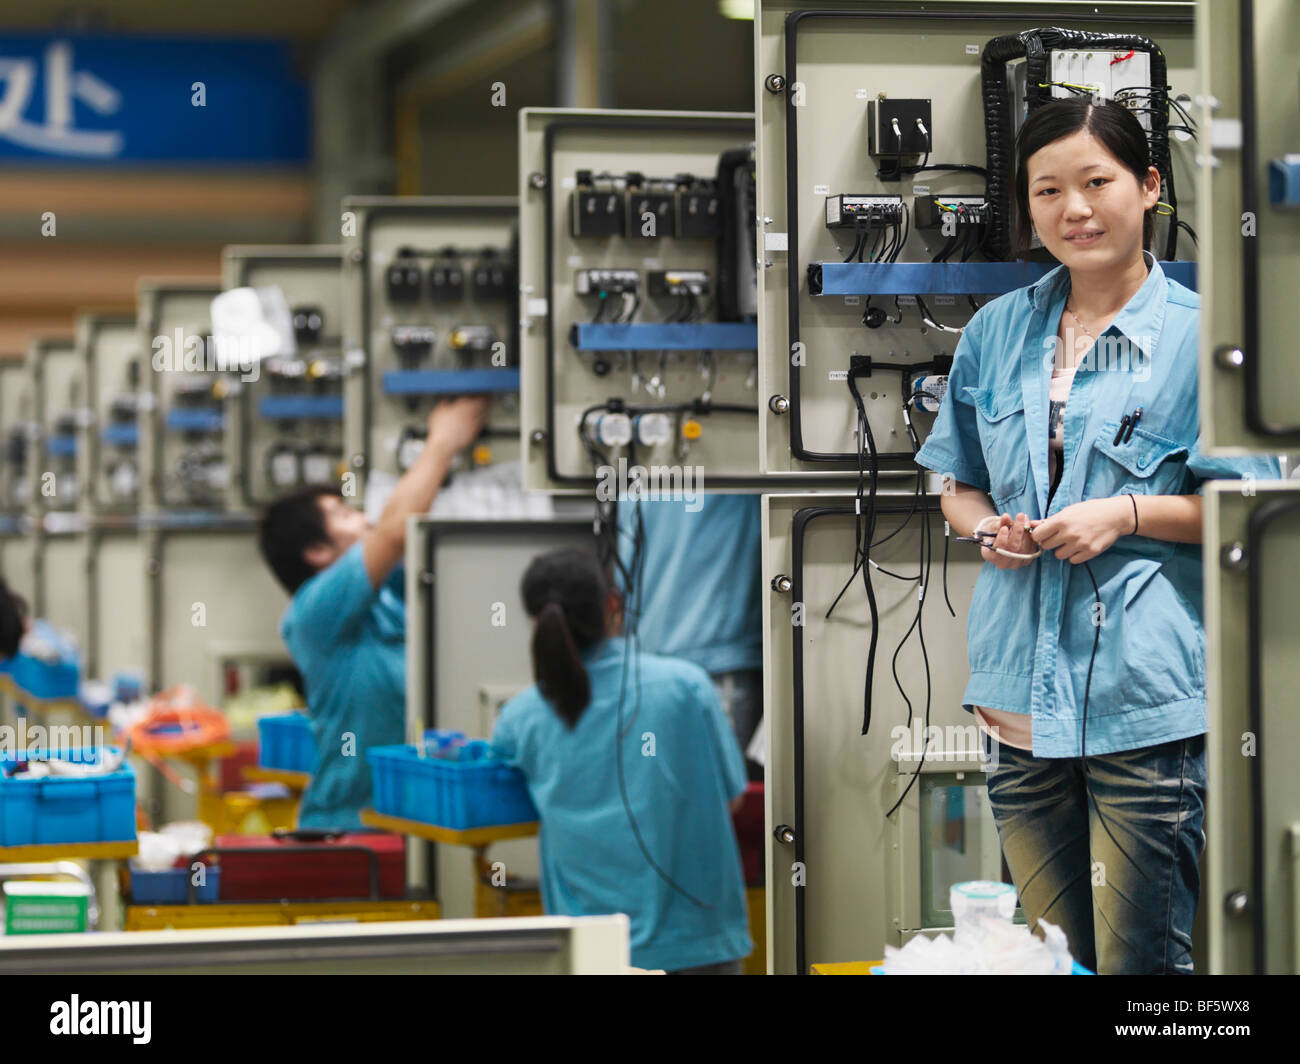 A factory worker standing at her work station in the assembly line. - Stock Image